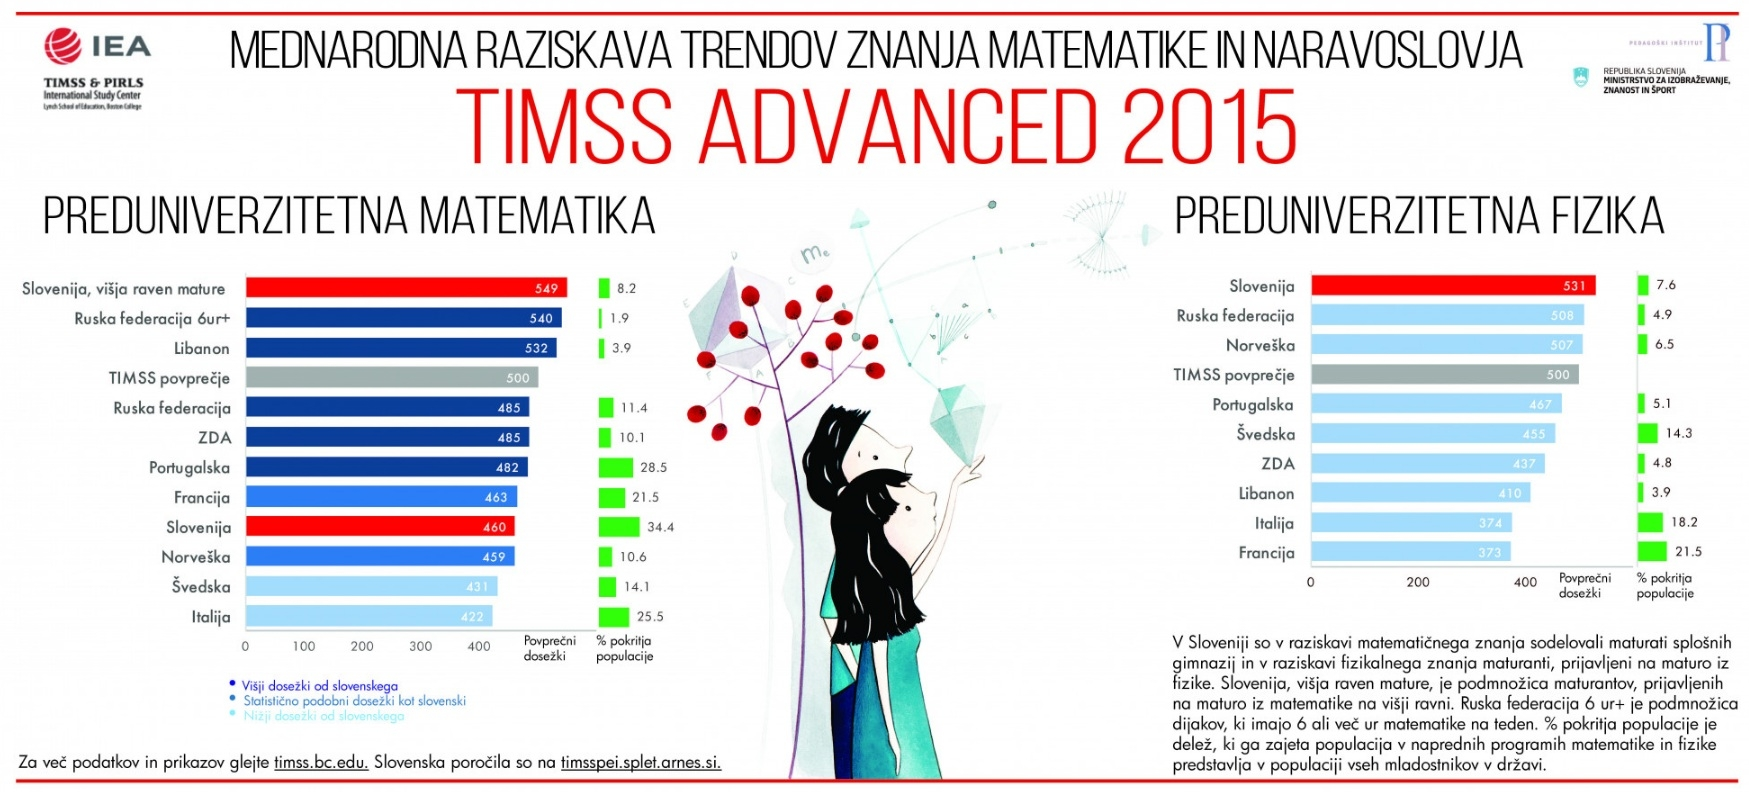 TIMSS Advanced 2015 - poster SLO